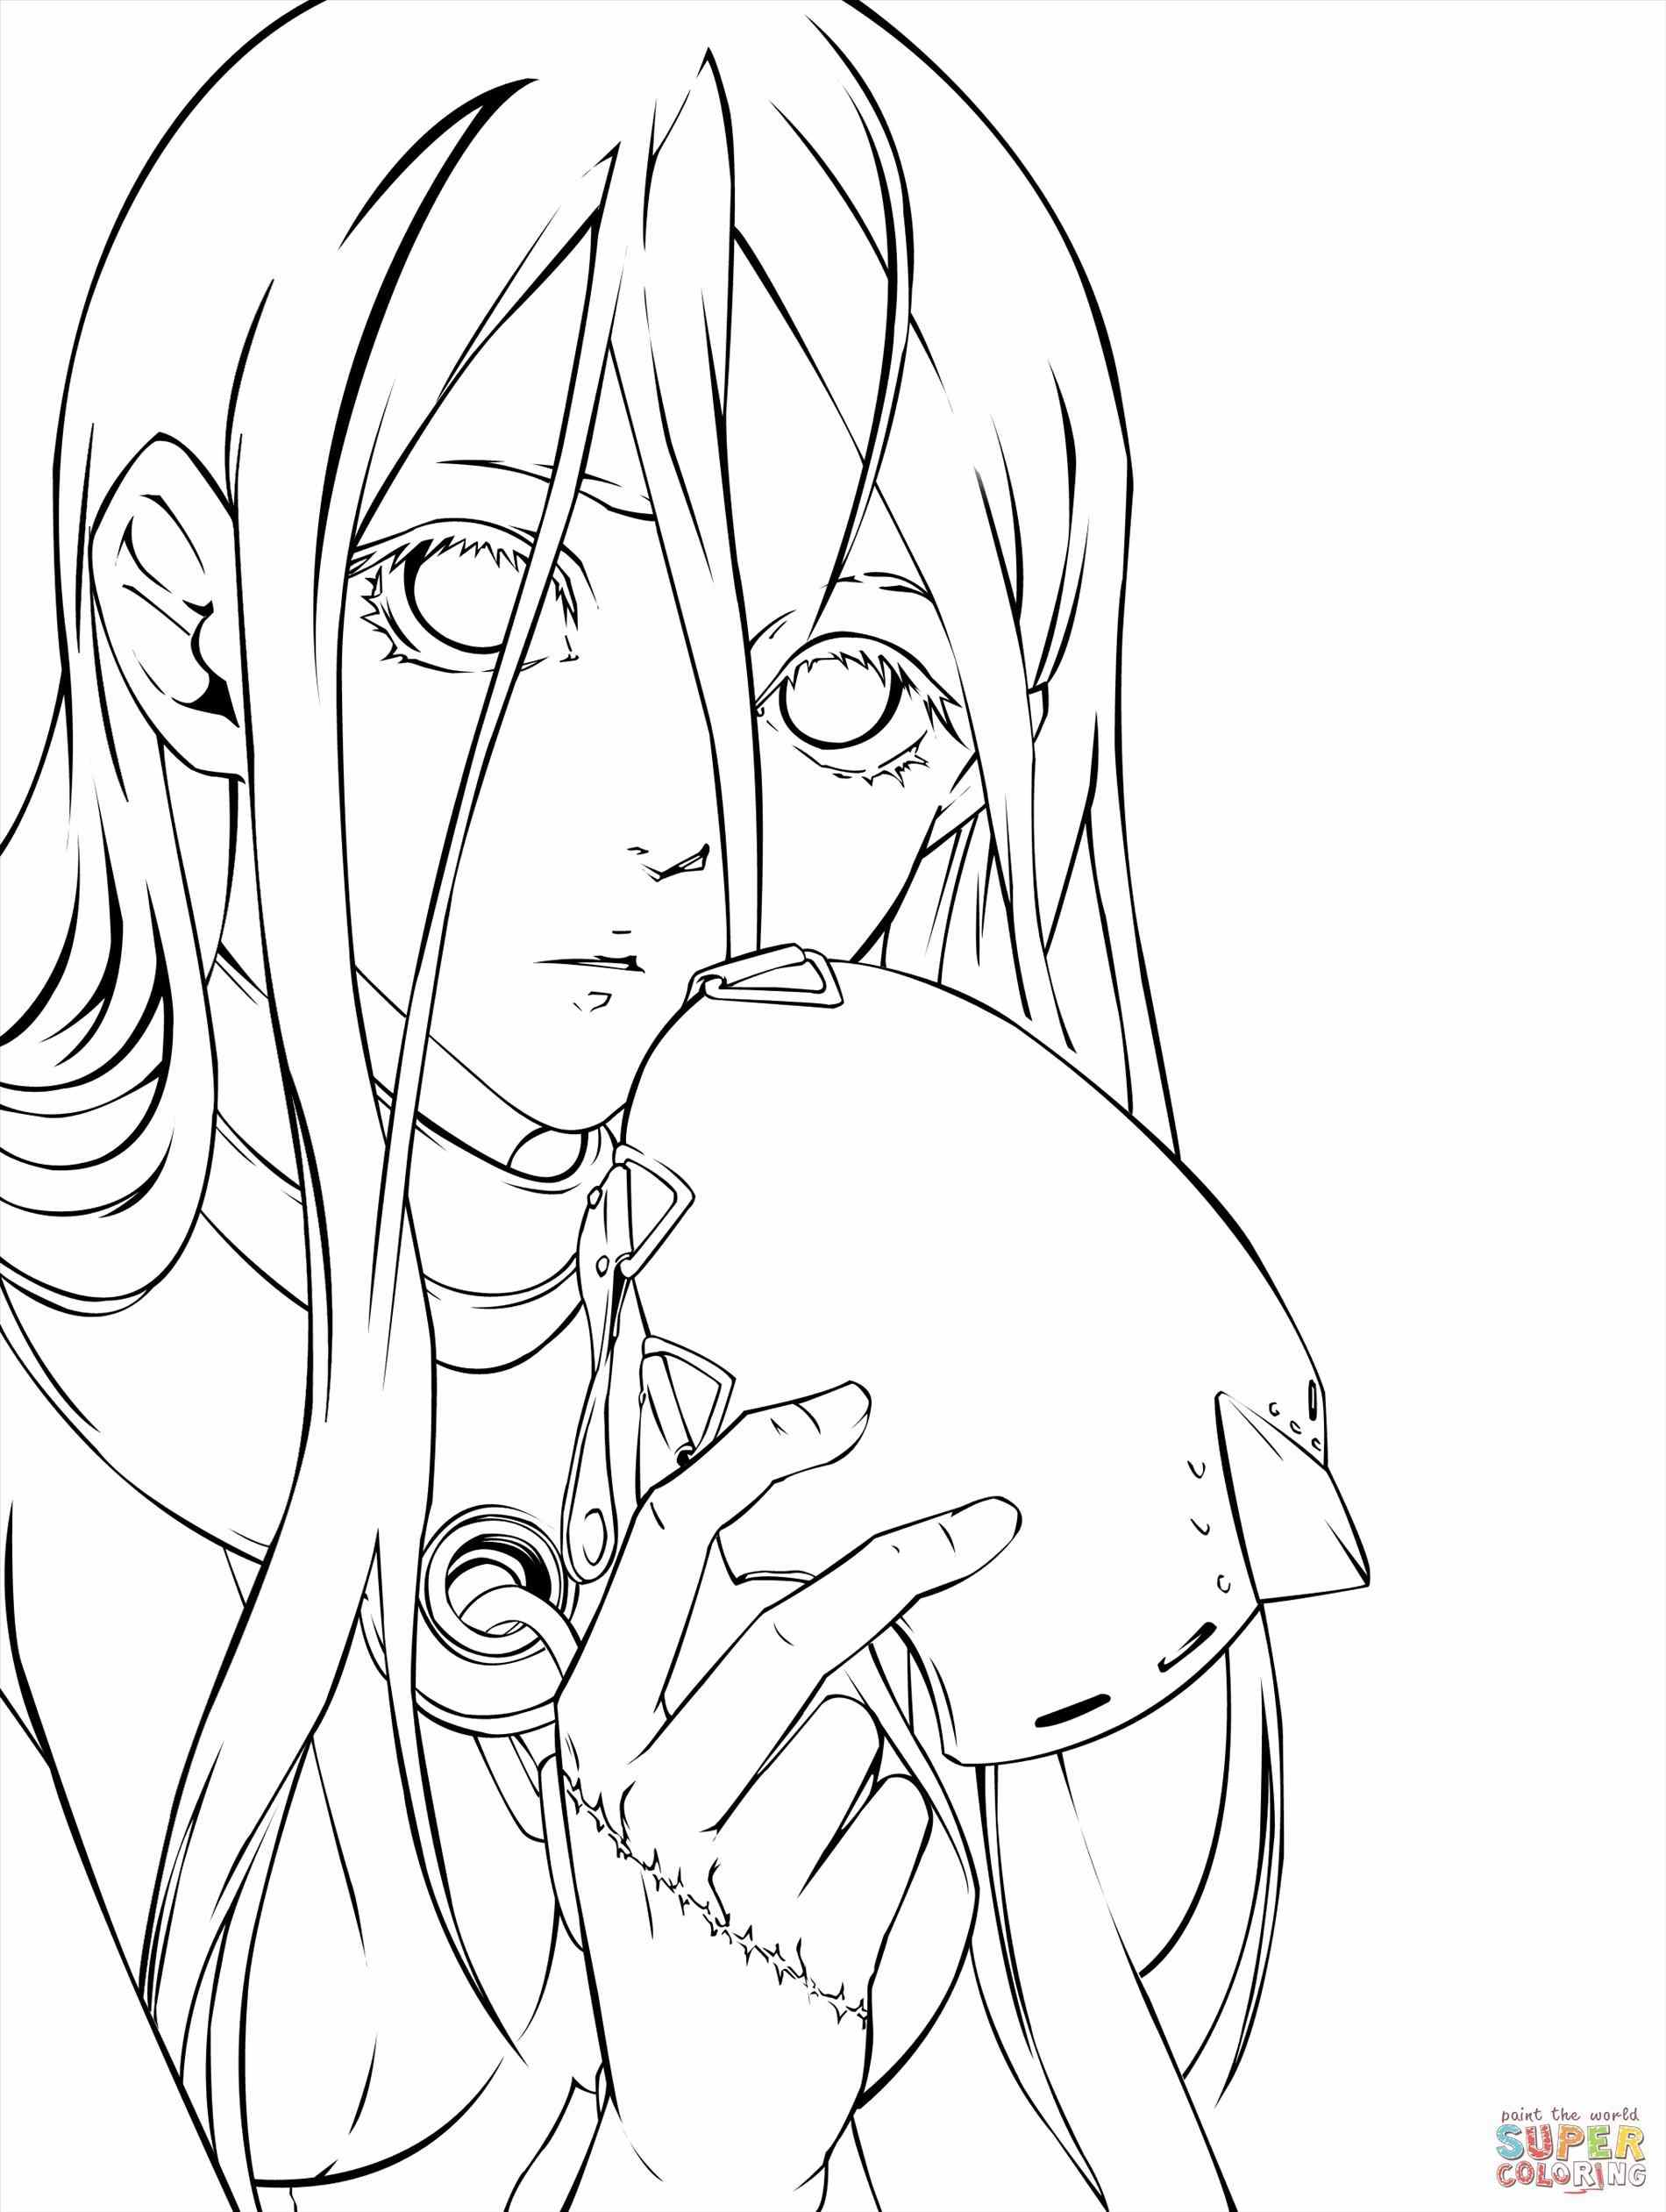 manga anime coloring pages anime girls from shugo chara coloring pages for kids pages coloring manga anime